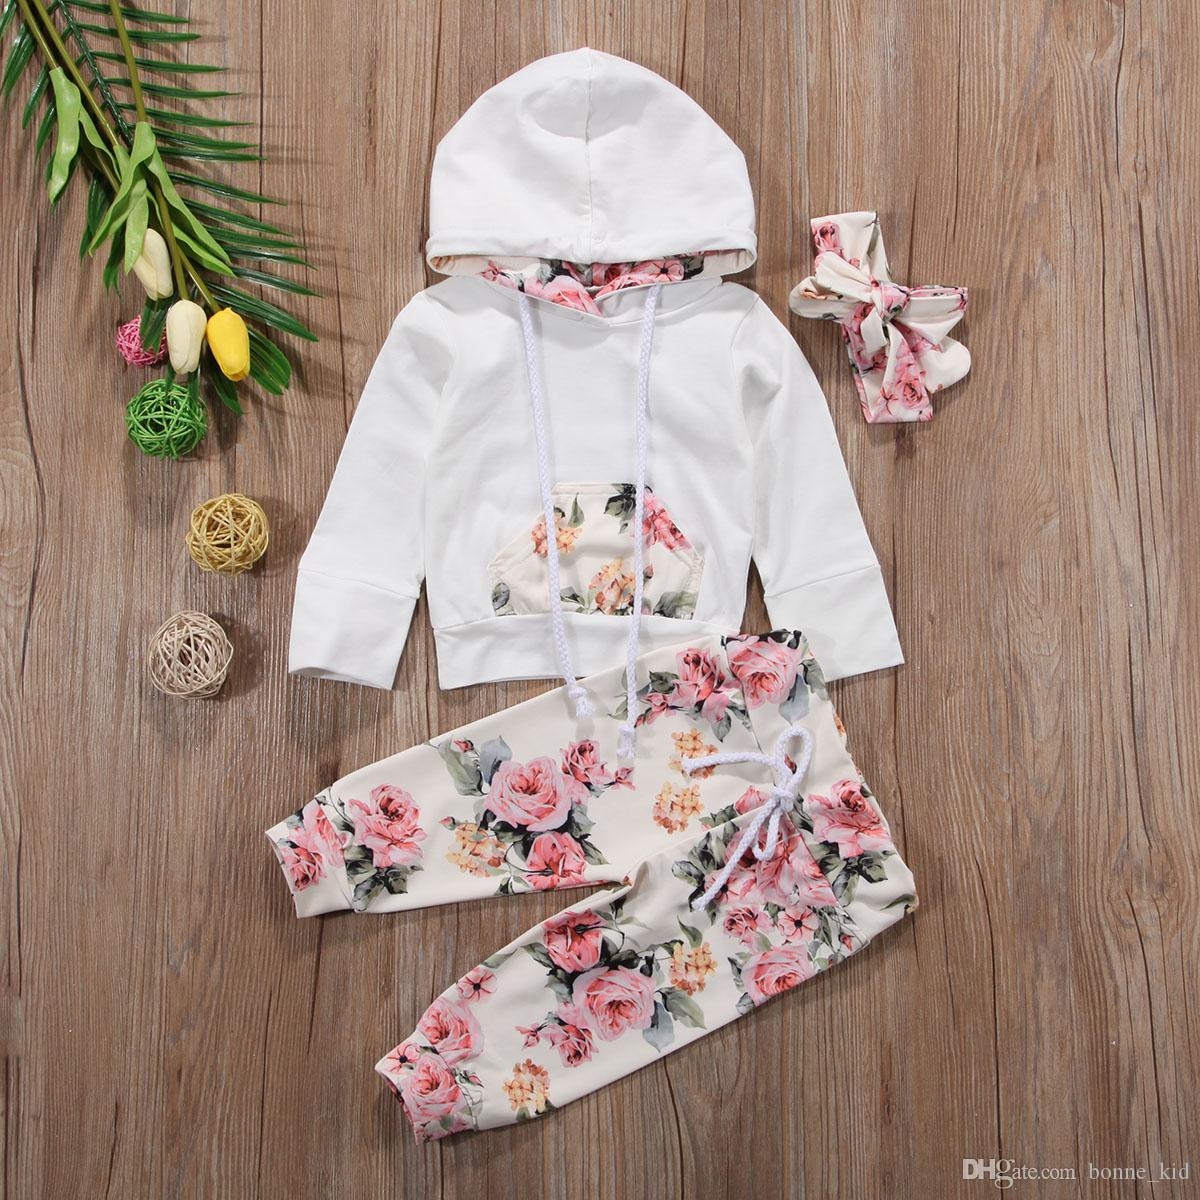 New Baby Infant Girls Set Abbigliamento Flower Long Sleeve Hooded Tops + Pants + Headband Outfits 3pcs Set Floral Tuta Neonata Toddler 0-24 M